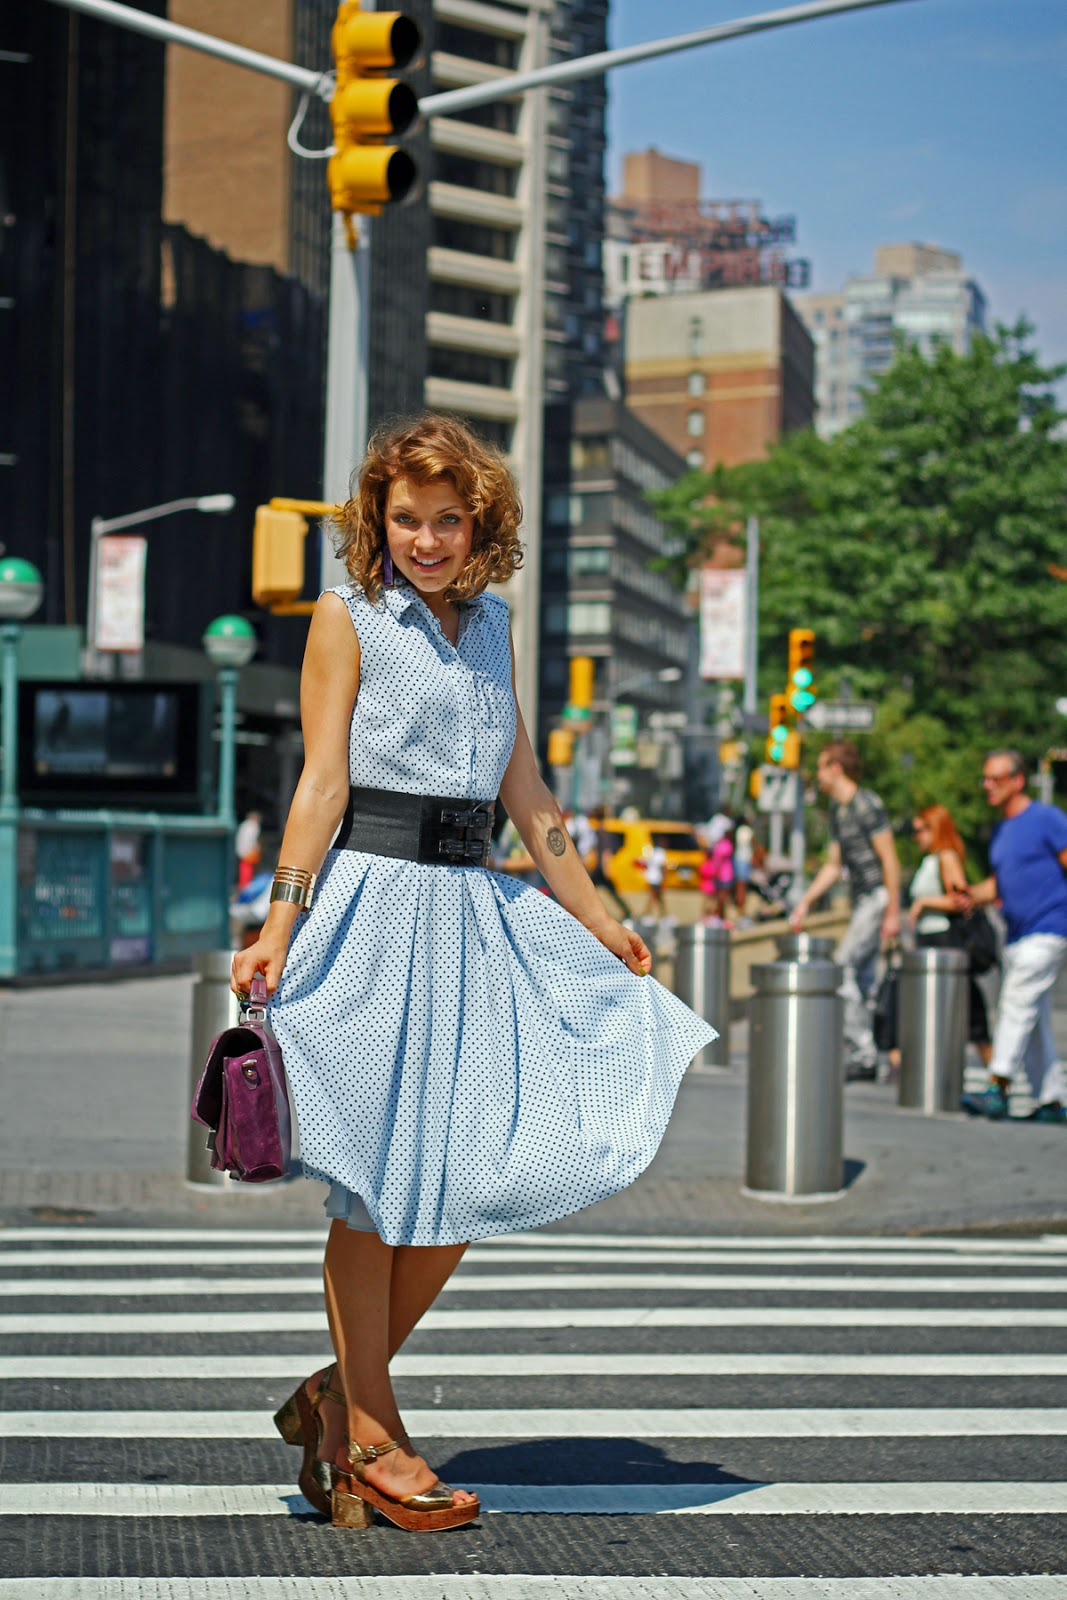 jasmin fatschild new york myberlinfashion blogger